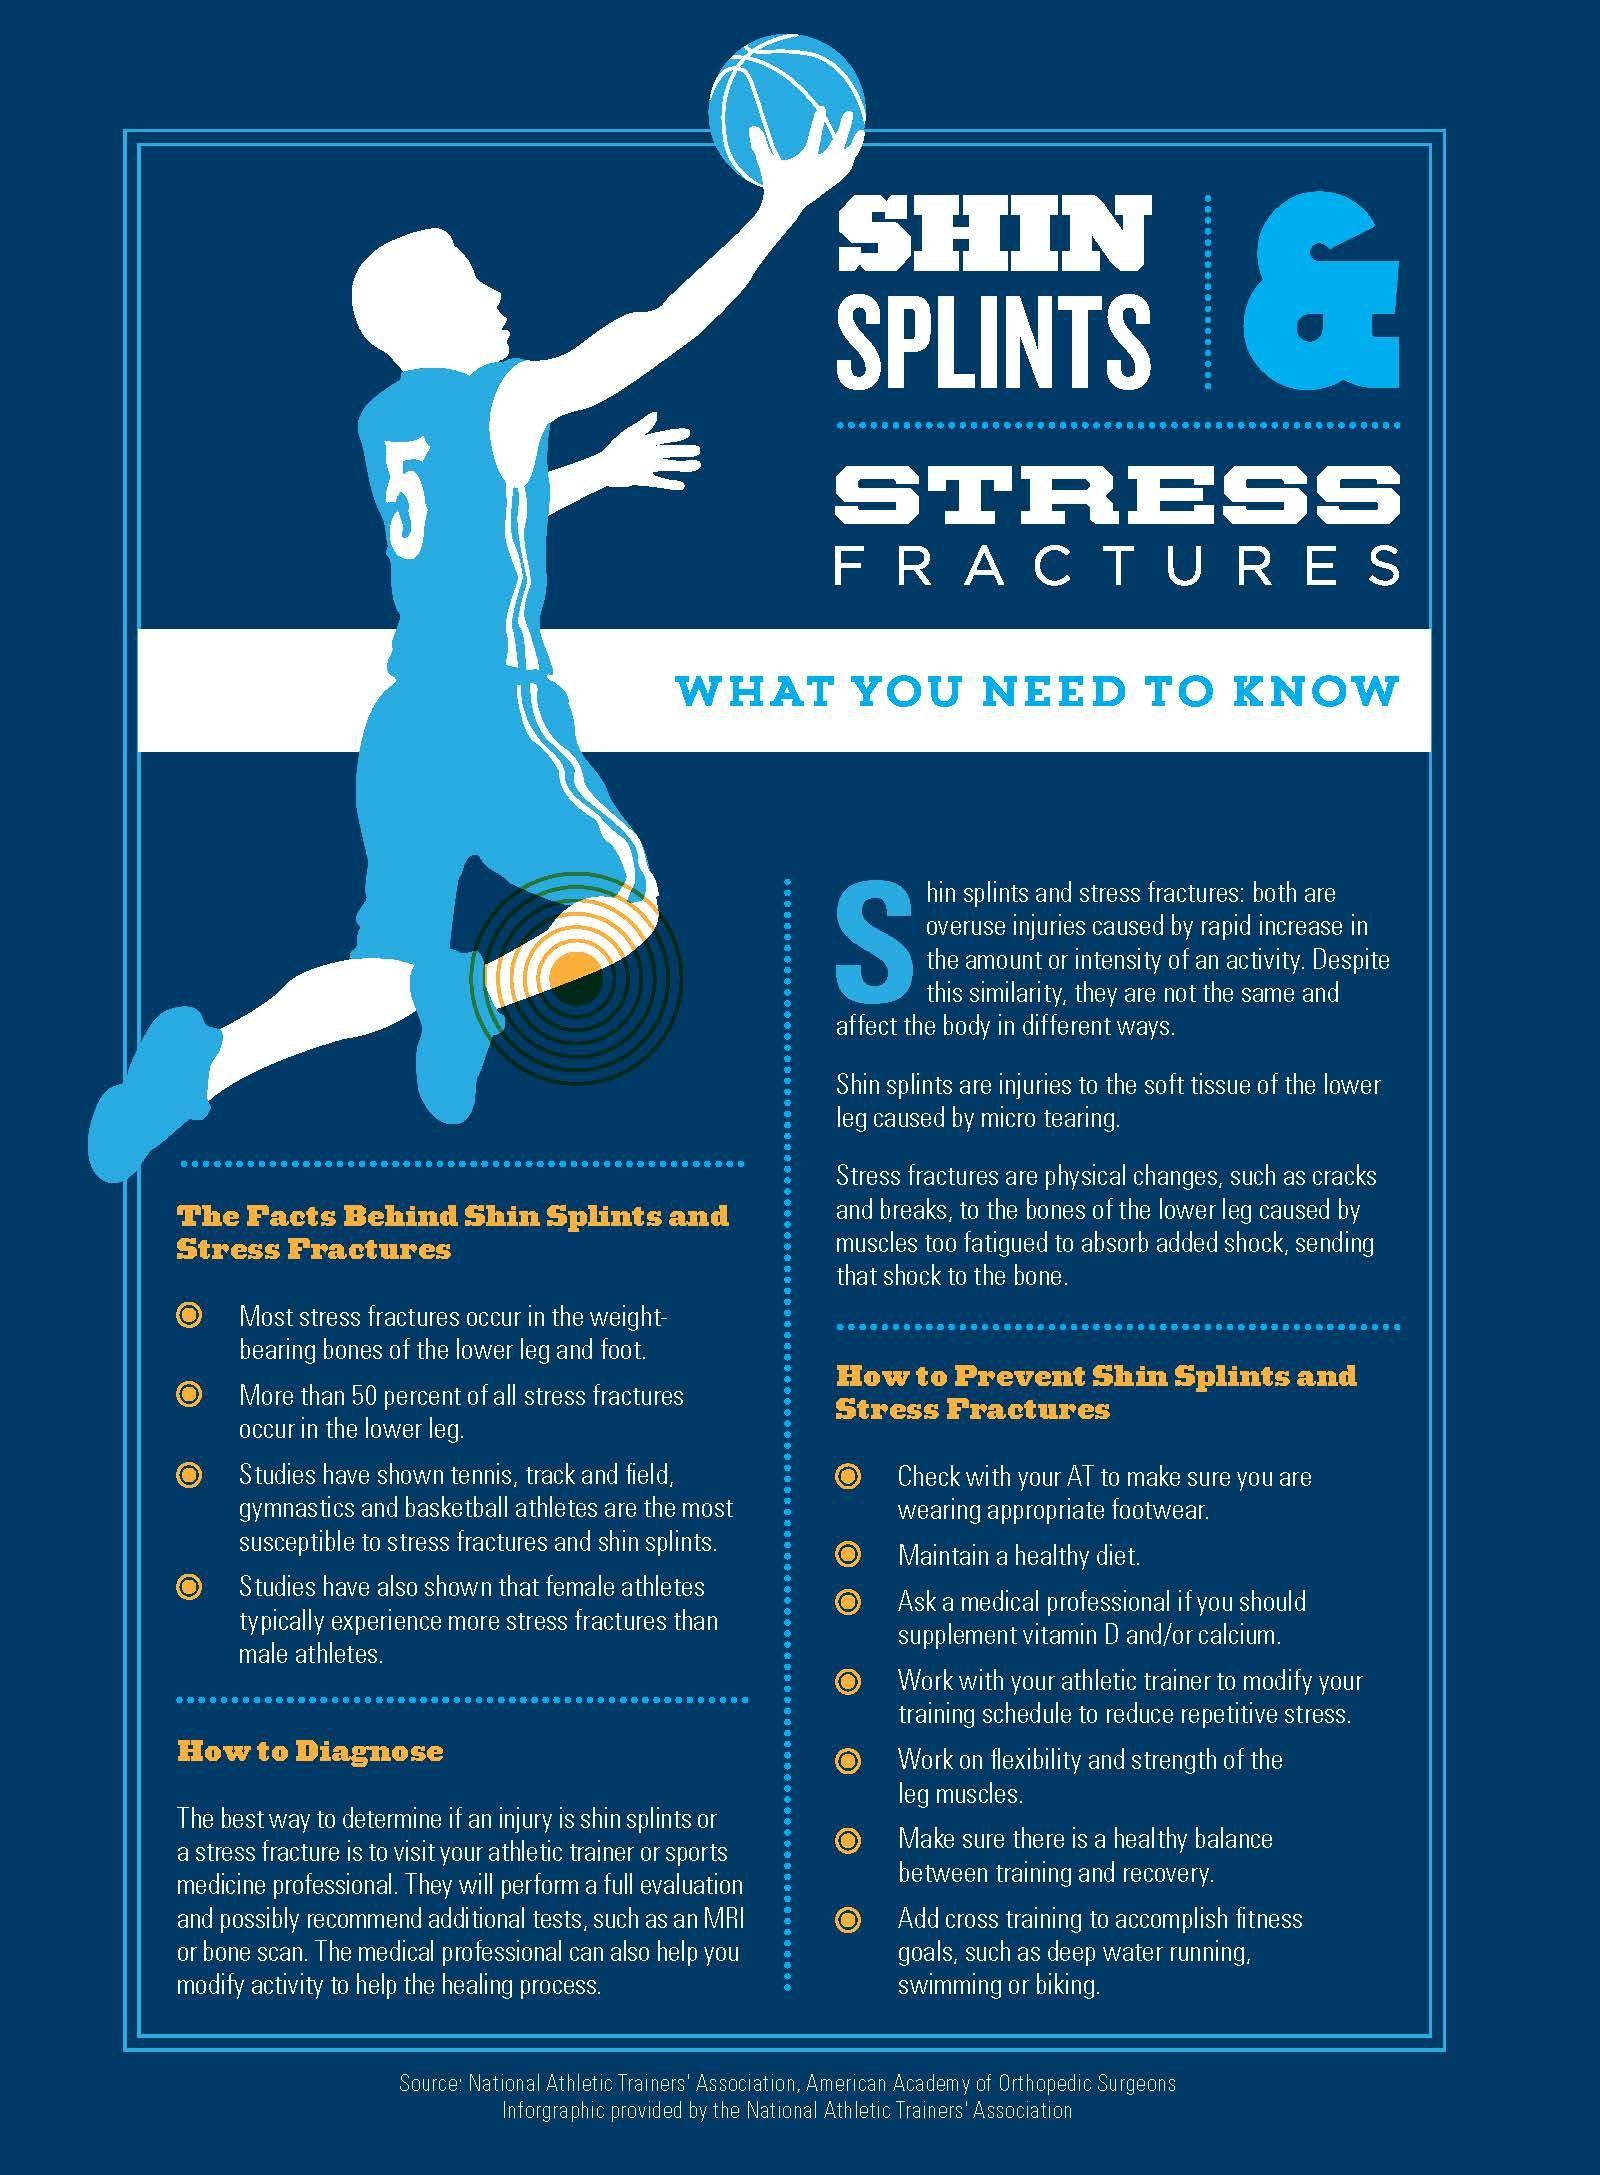 Shin Splints And Stress Fractures Both Are Overuse Injuries Caused By Rapid Increase In The Amount Or Intensity Of An Acti Shin Splints Stress Fracture Stress